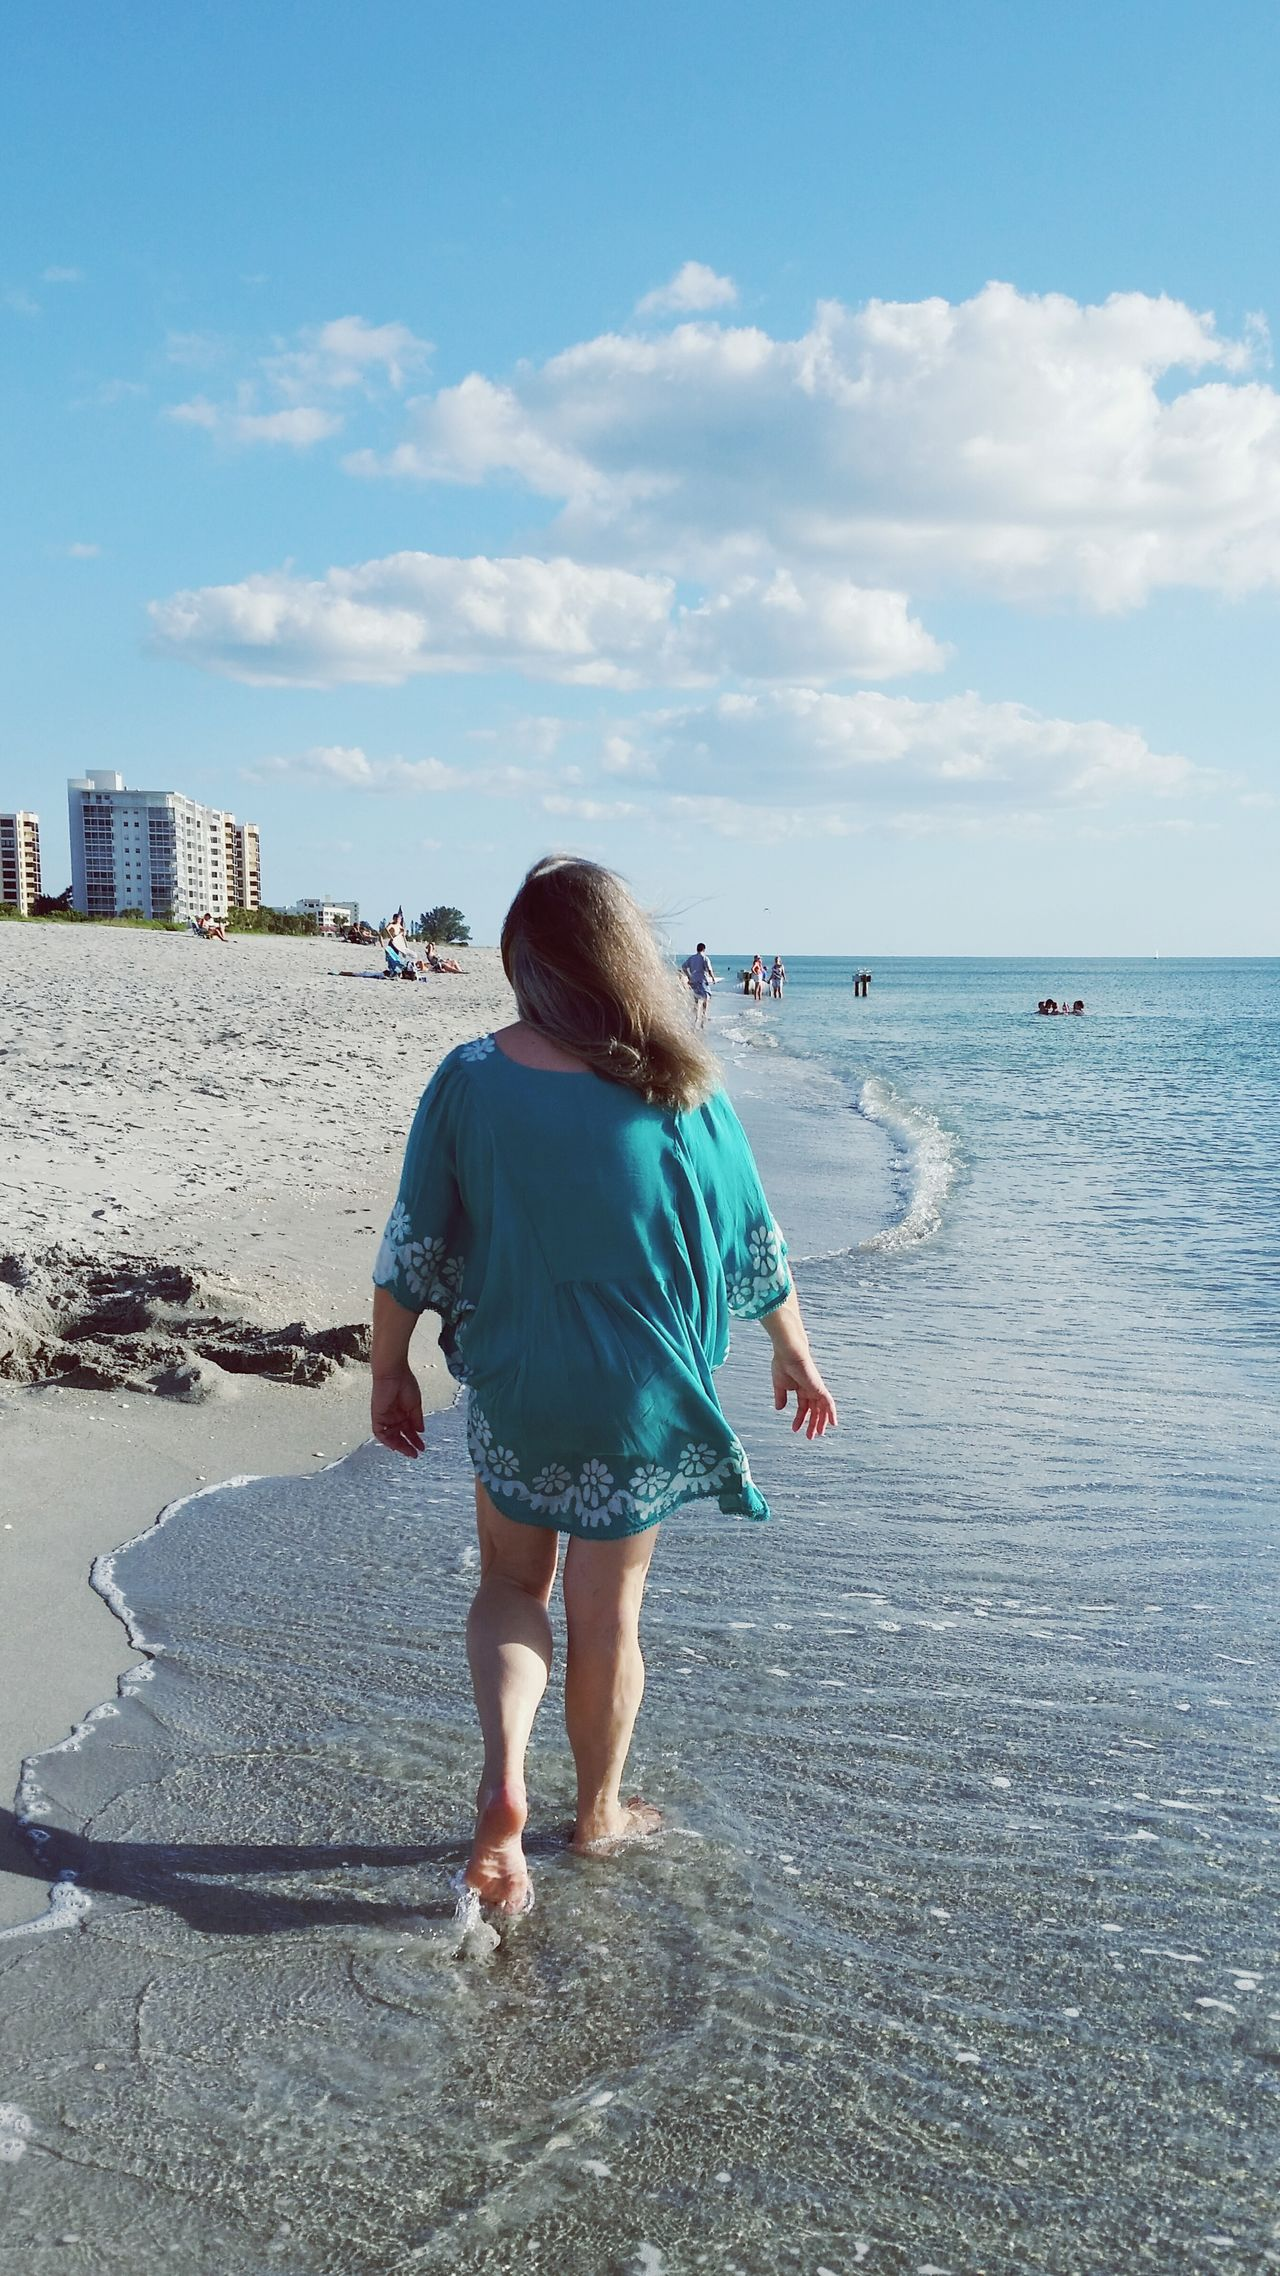 Sea Sky Blue Beach One Person Leisure Activity One Woman Only Women Sand Travel Destinations Strollingonthebeach Woman On The Beach Woman Walking On The Beach Gulf Coast Florida